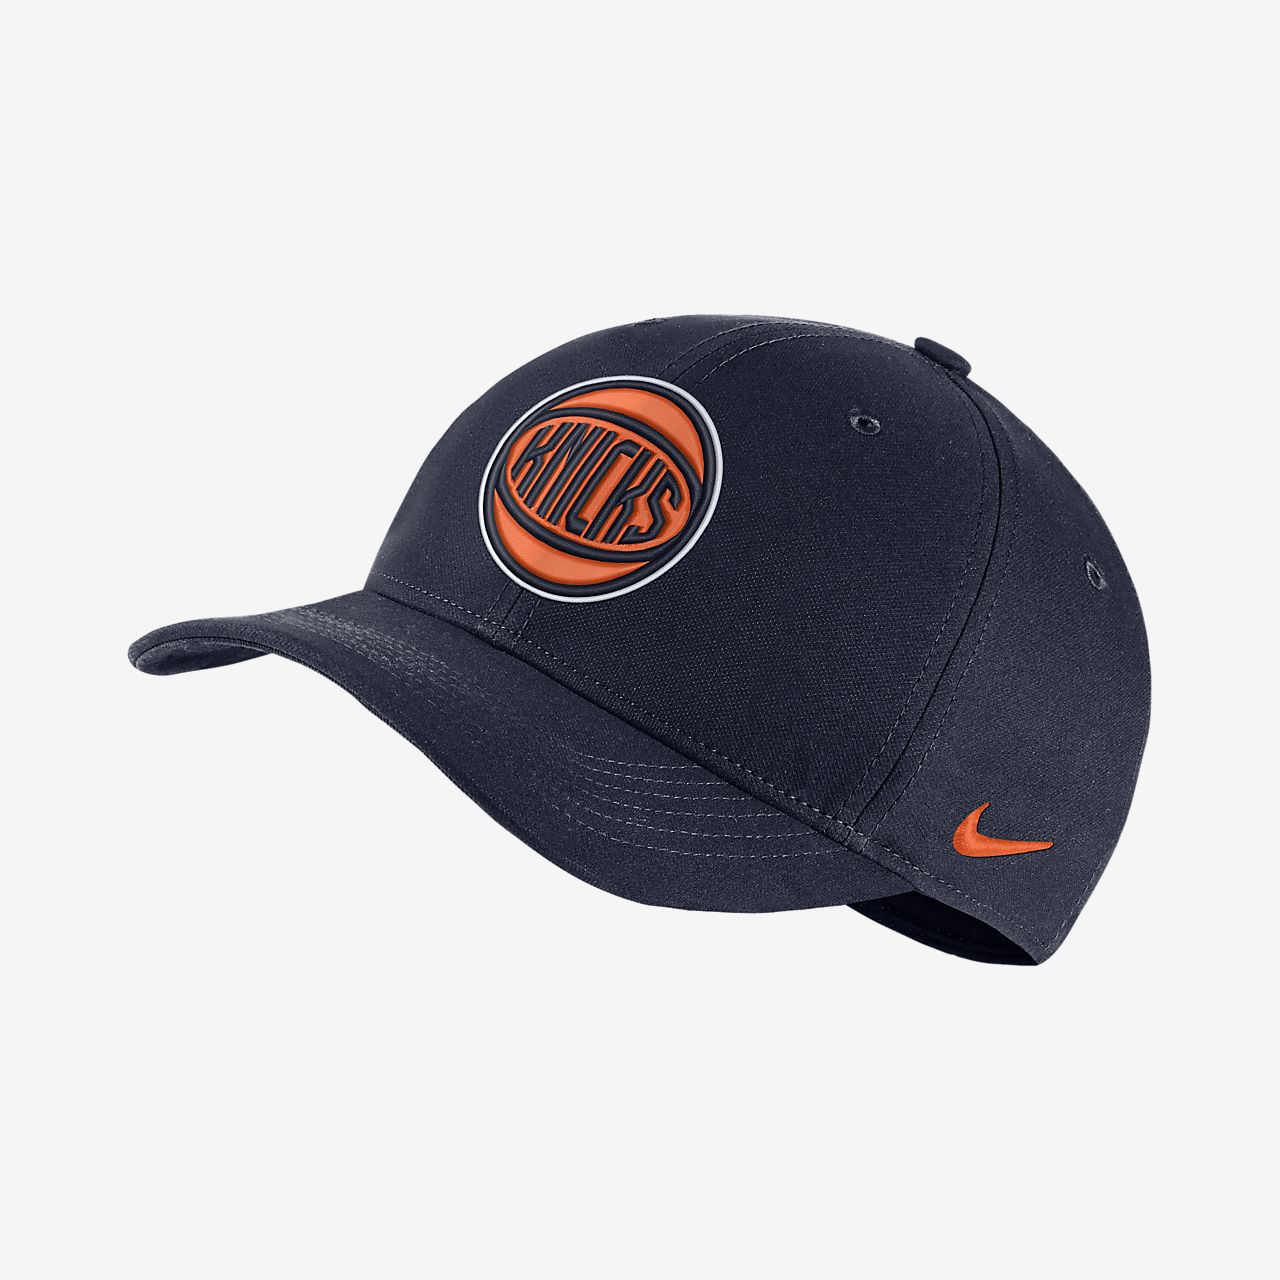 Casquette NBA New York Knicks City Edition Nike AeroBill Classic99